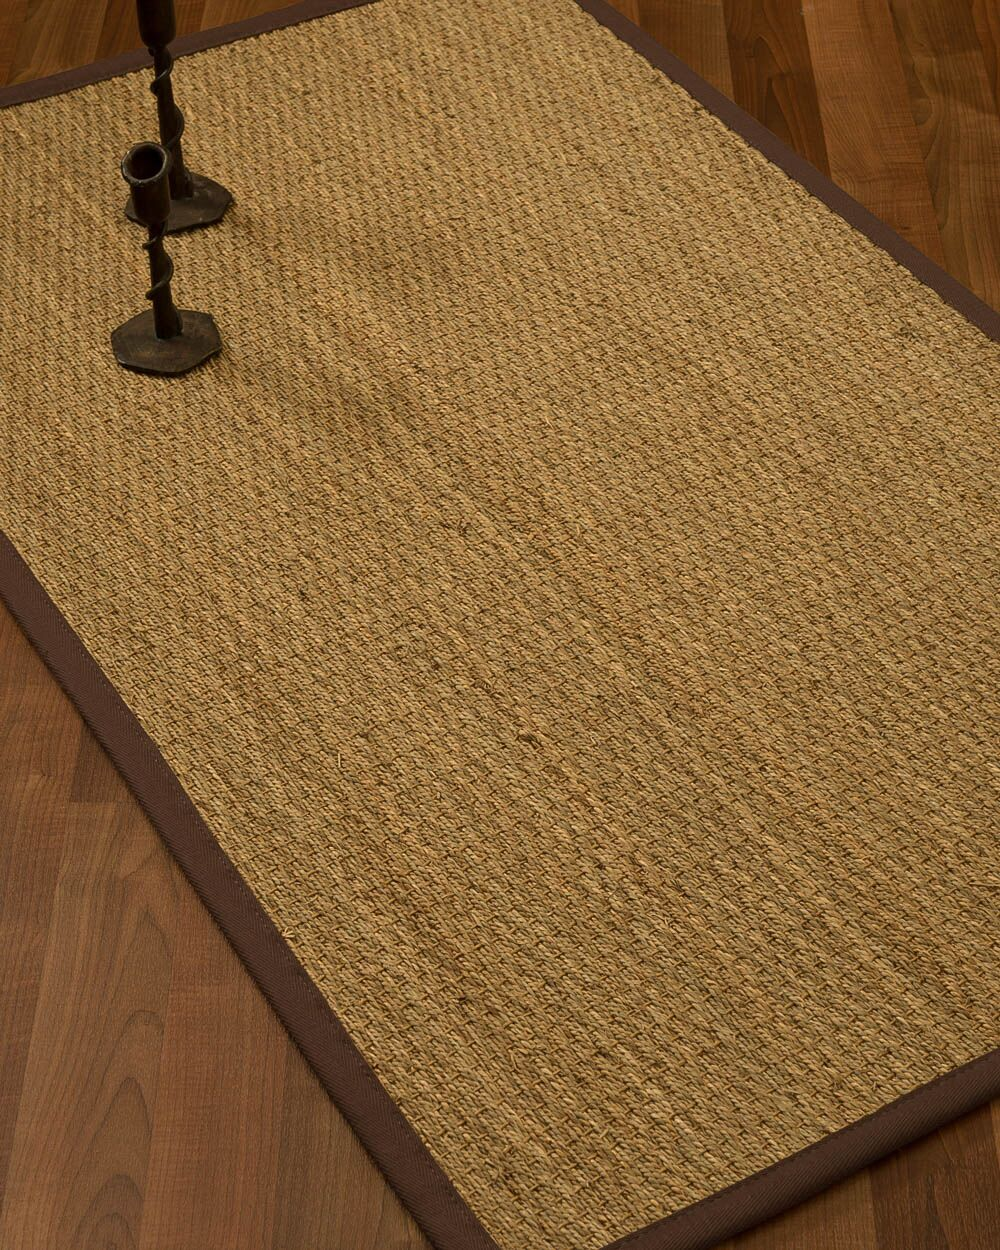 Vanmatre Border Hand-Woven Beige/Brown Area Rug Rug Size: Rectangle 12' x 15', Rug Pad Included: Yes